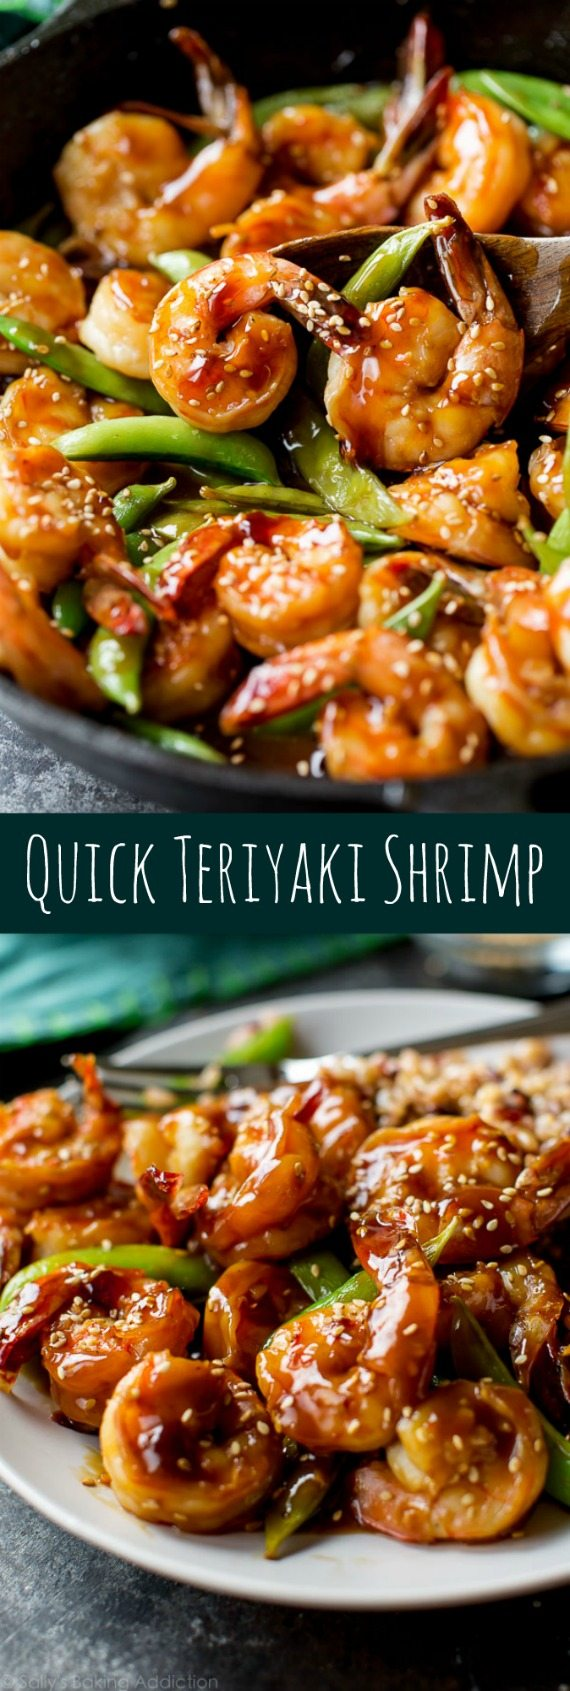 Easy, healthy, and on the table in about 30 minutes! Quick homemade teriyaki shrimp recipe on sallysbakingaddiction.com